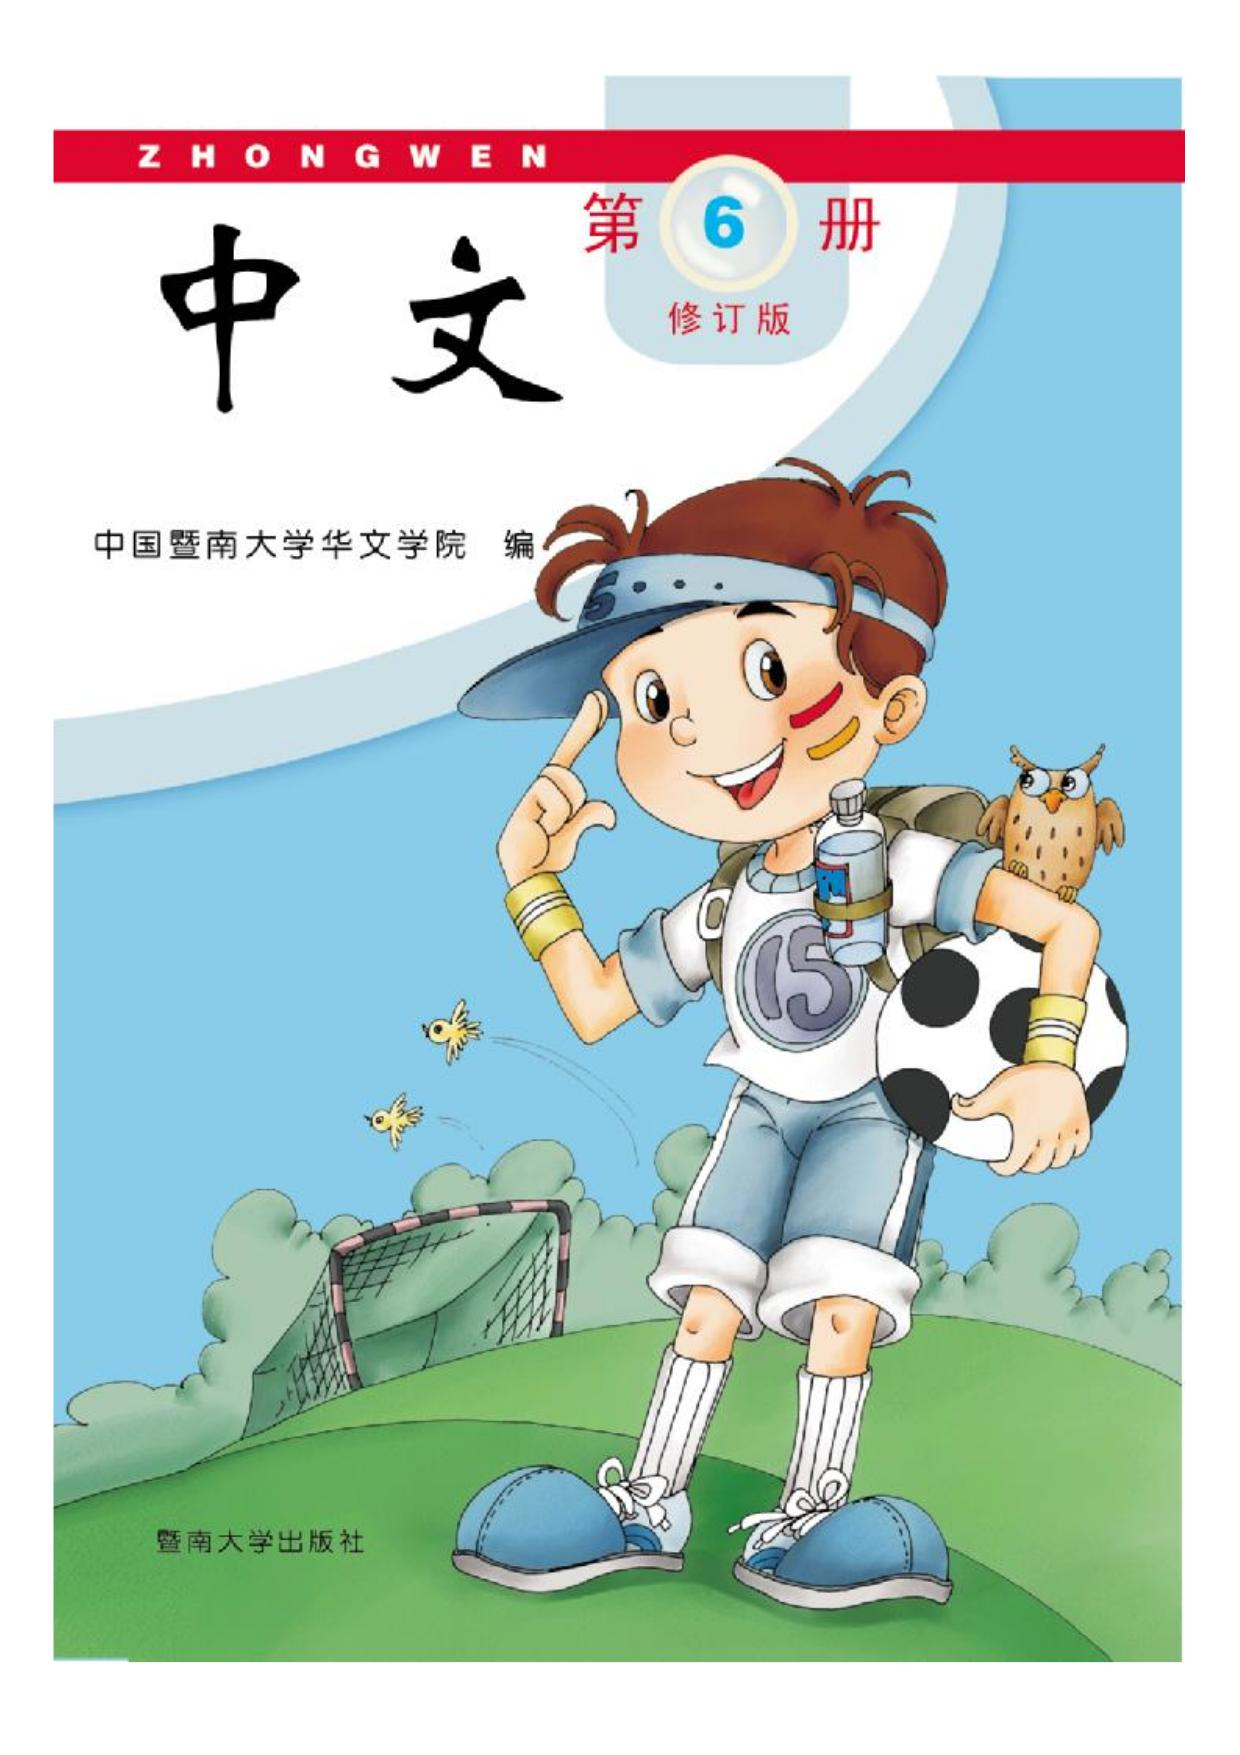 front cover of the textbook ZhongWen Revised Version Level 6